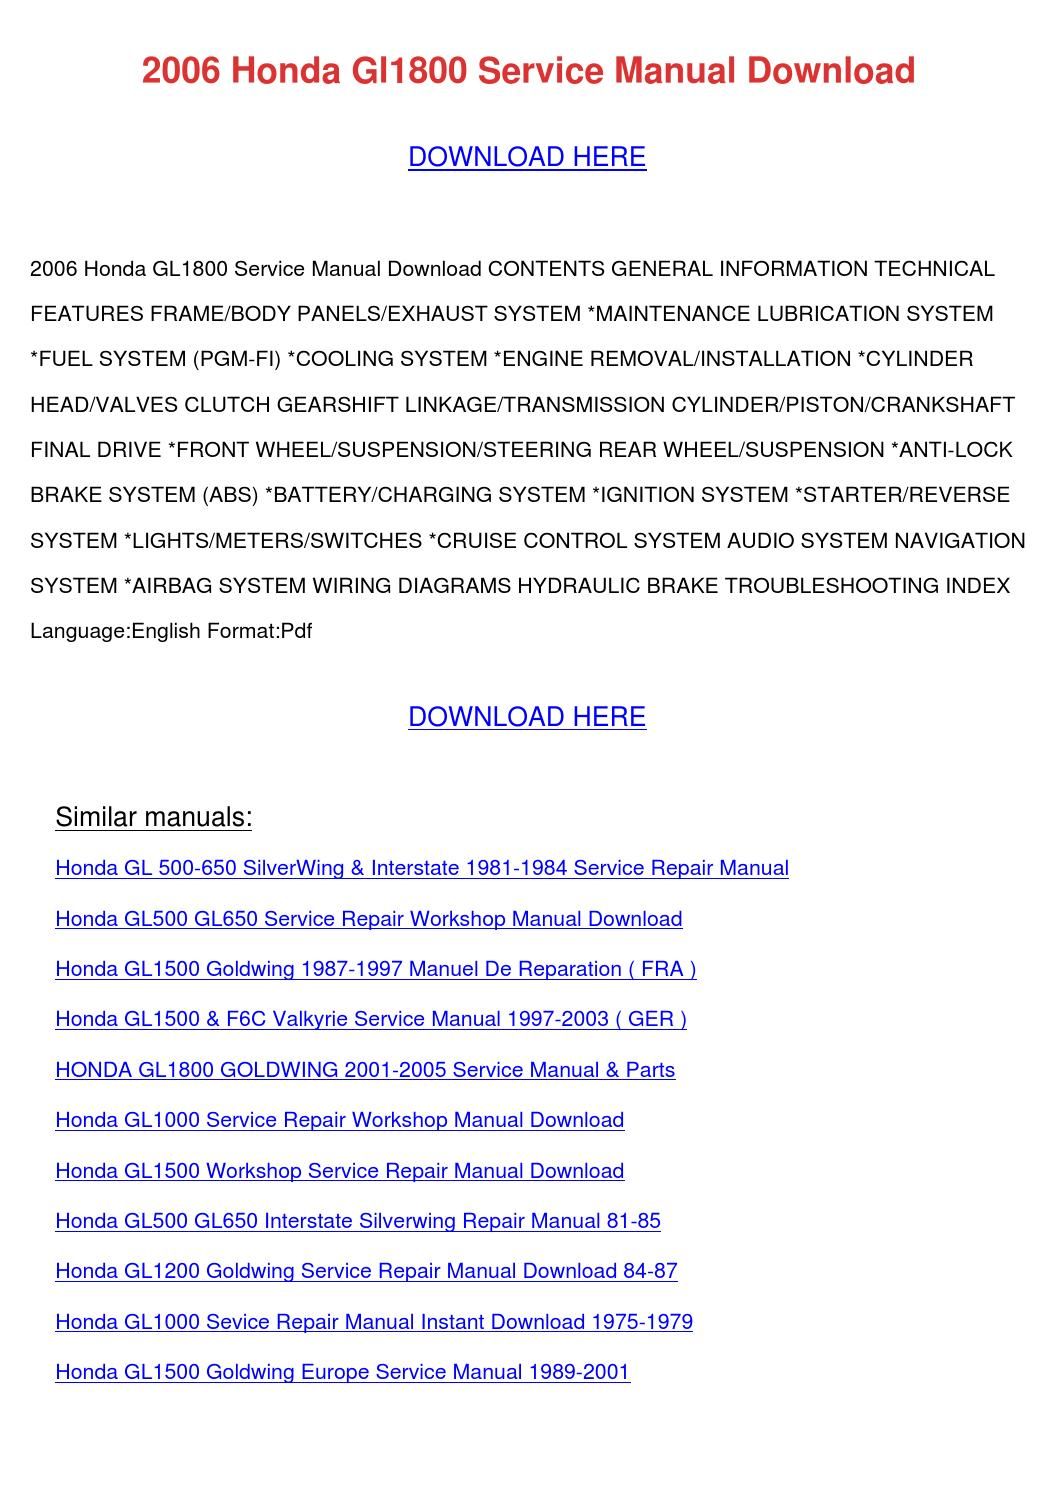 2006 Honda Gl1800 Service Manual Download By Edmundcyr